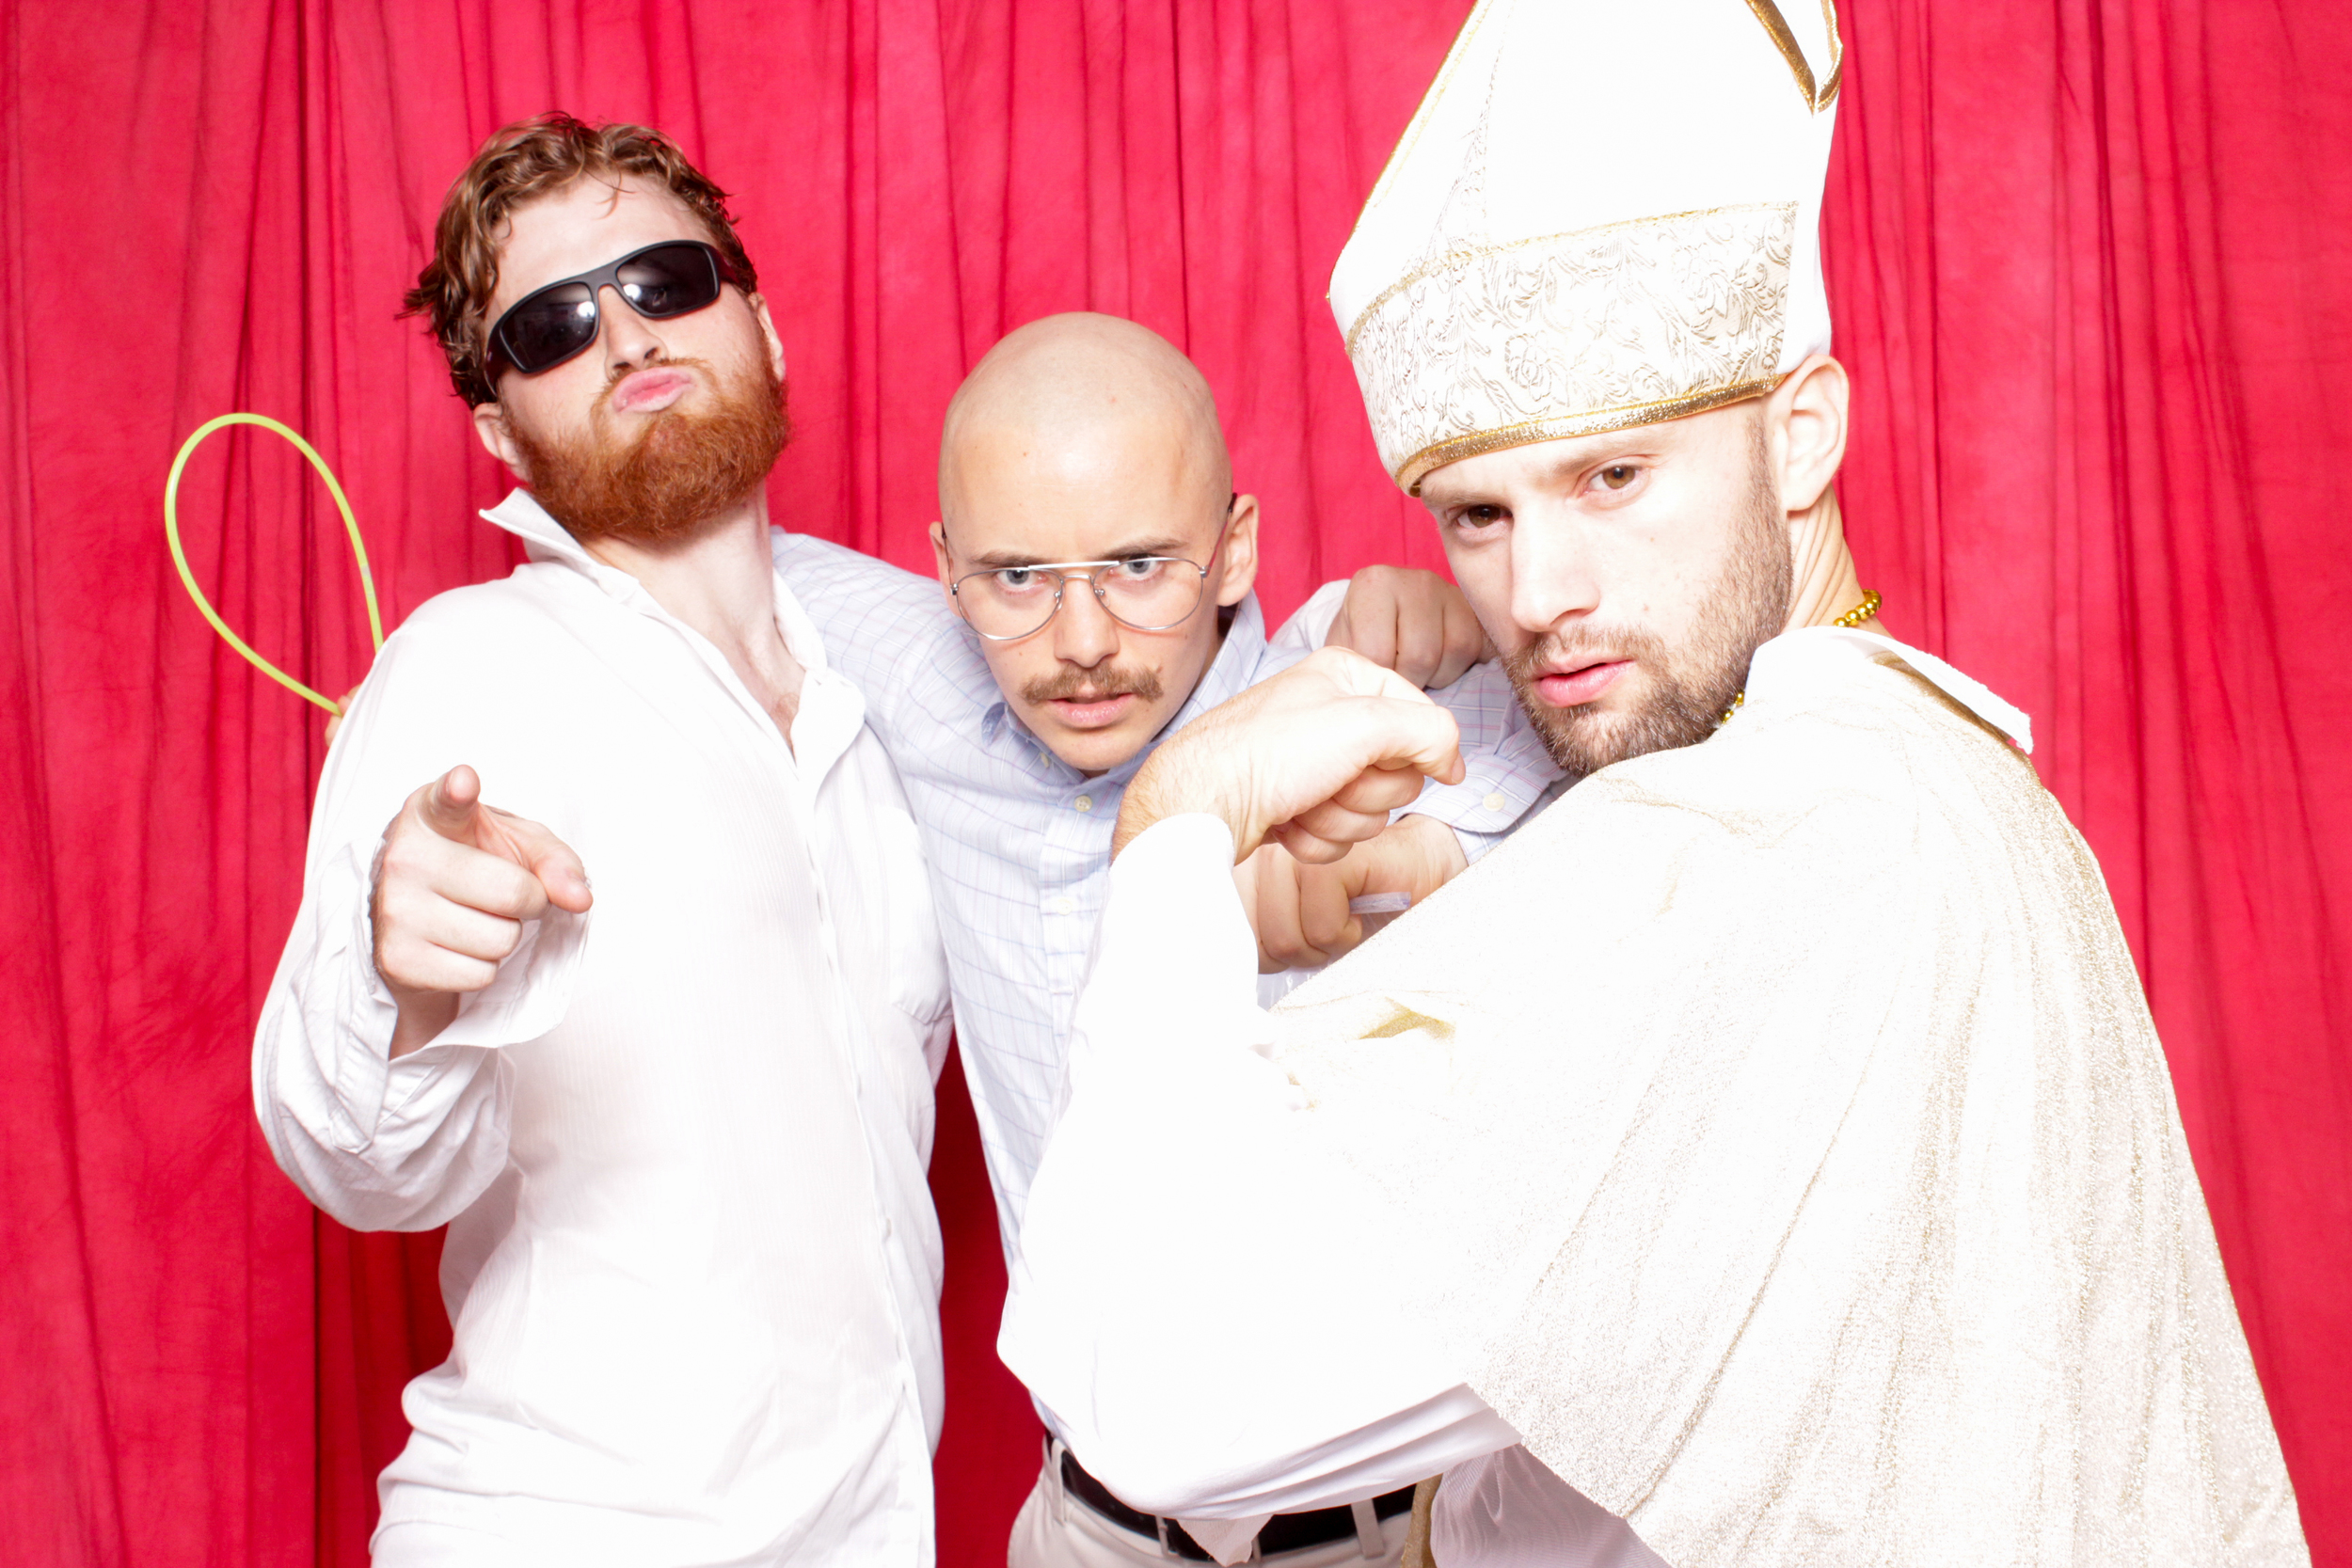 chico-photo-booth-rental-halloween-party-197.jpg